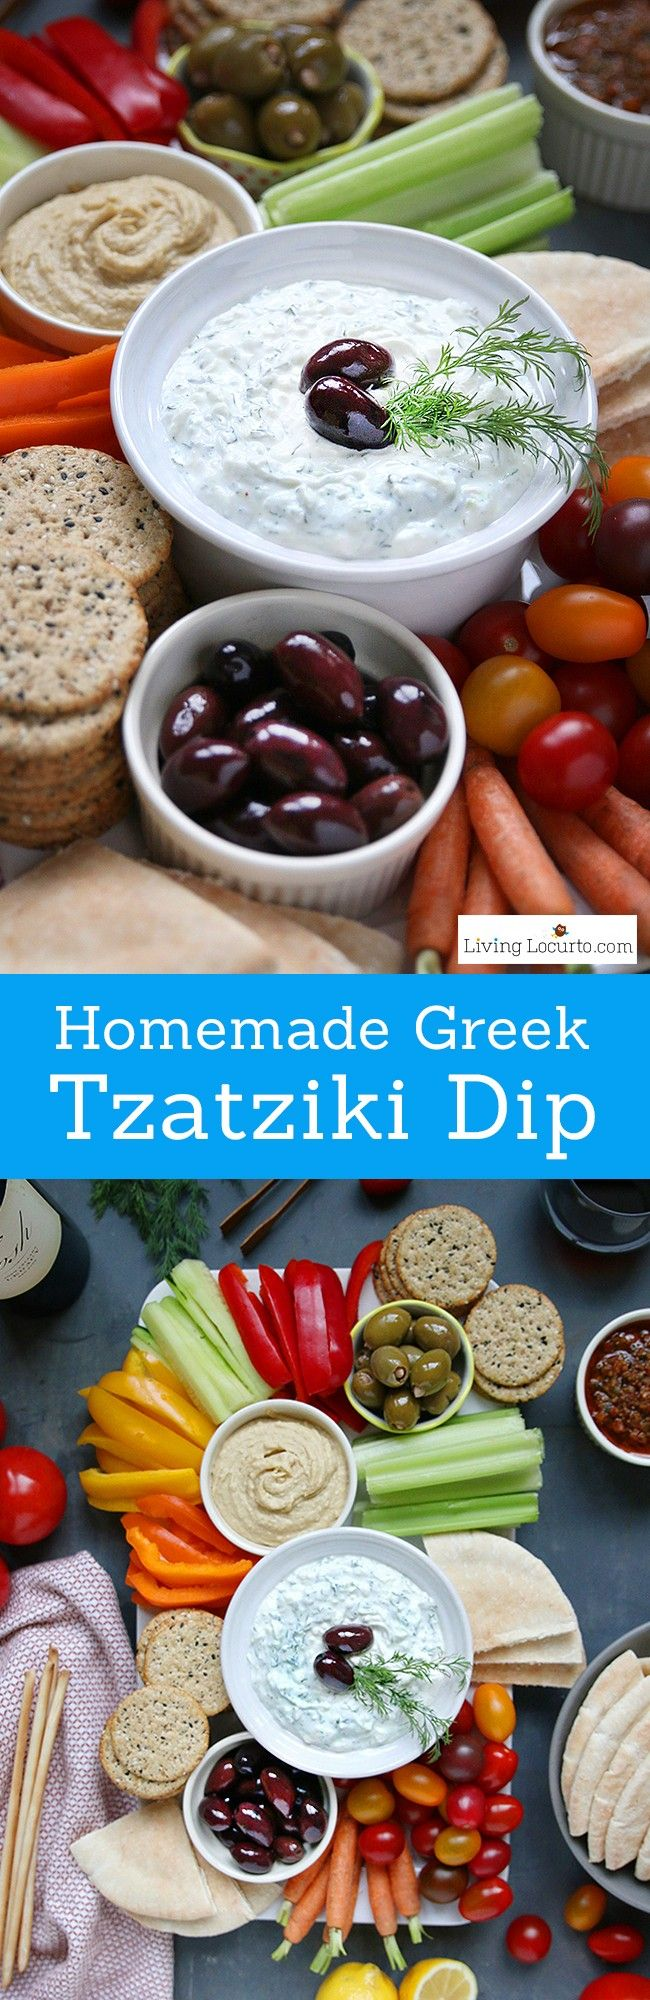 Traditional Greek Tzatziki recipe perfect for dip or to use as a sauce with meat such as chicken or lamb. Greek yogurt and cucumber sauce. Perfect party dip for a My Big Fat Greek Wedding 2 movie watching night! LivingLocurto.com  #MyBigFatGreekWedding2